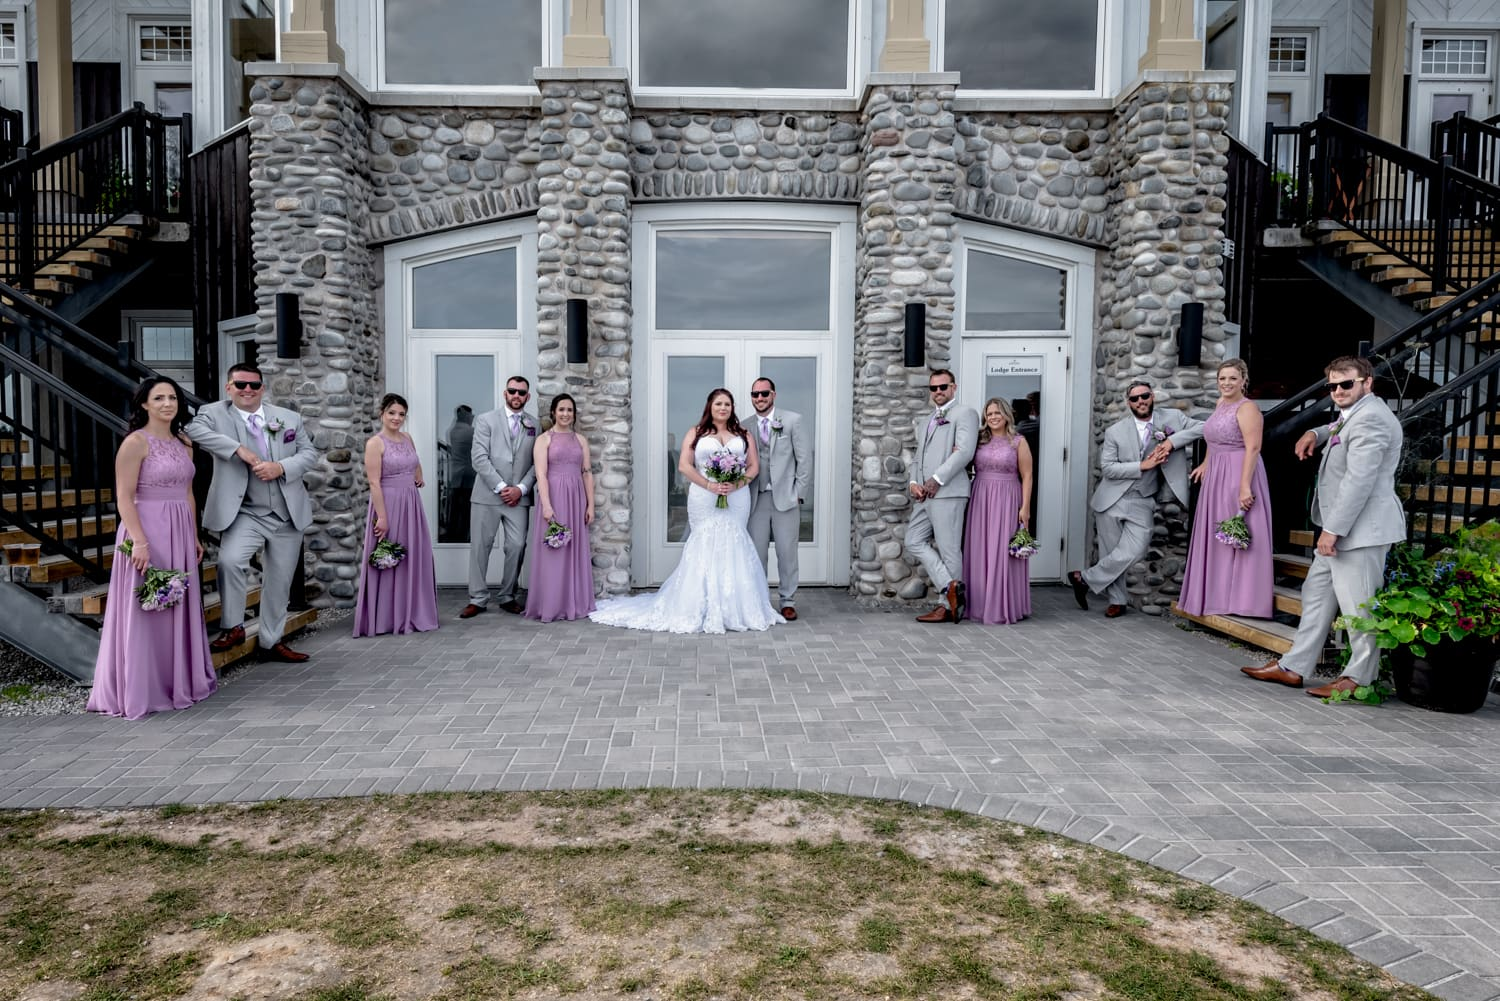 The bride and groom wedding party photos against the White Point main stone building in Nova Scotia.